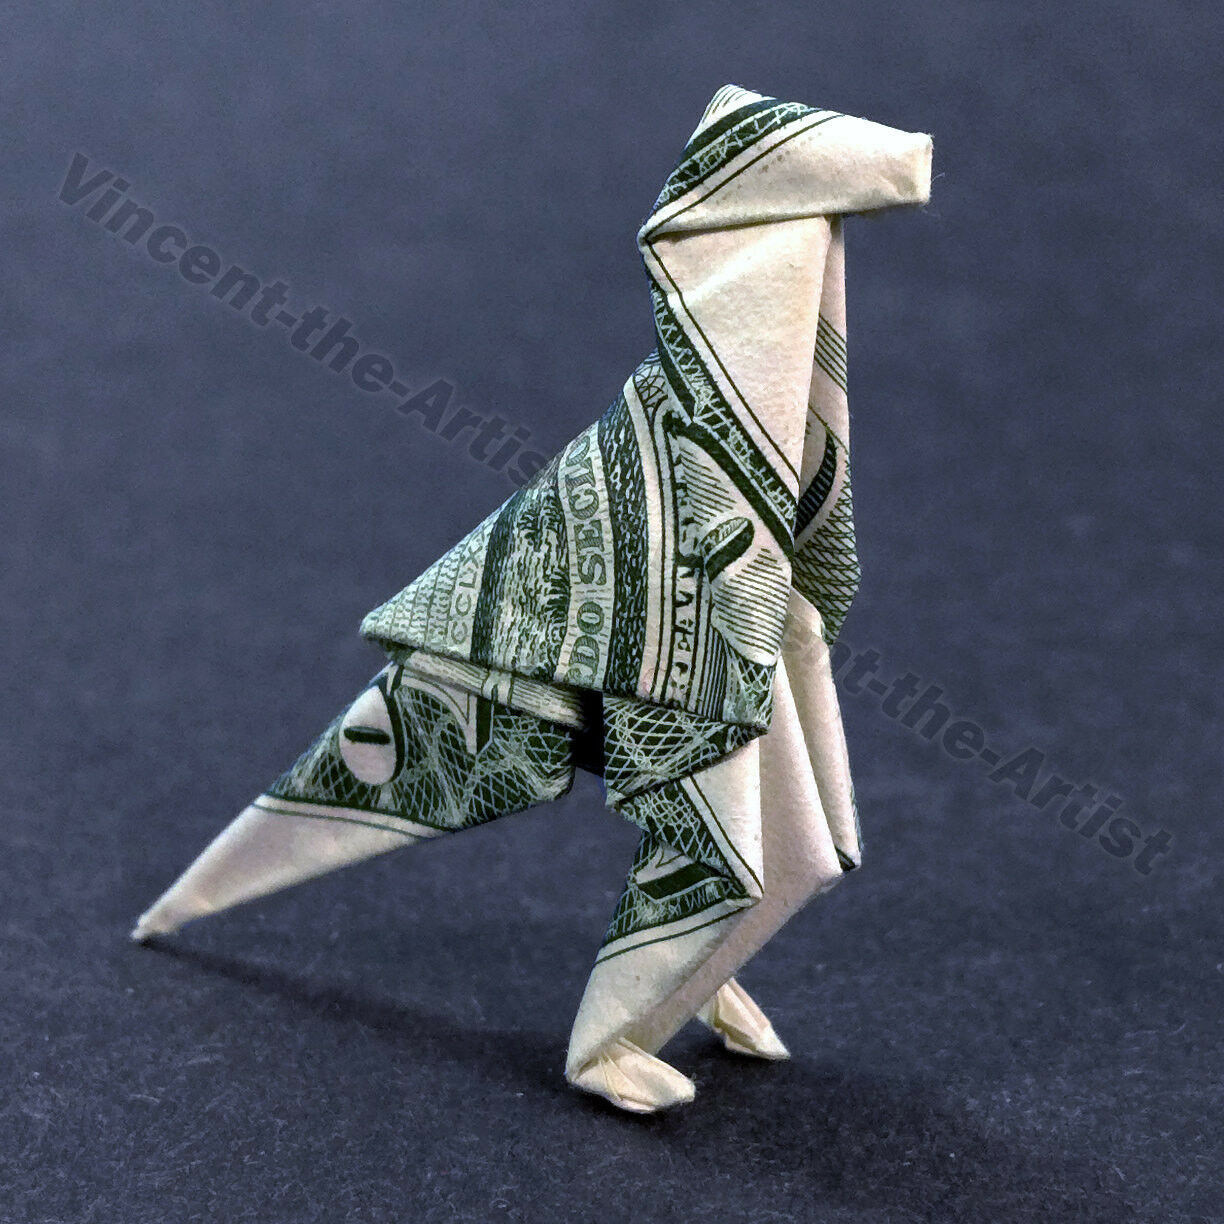 MONEY ORIGAMI Many Designs to choose from! Unique Dollar ... - photo#32